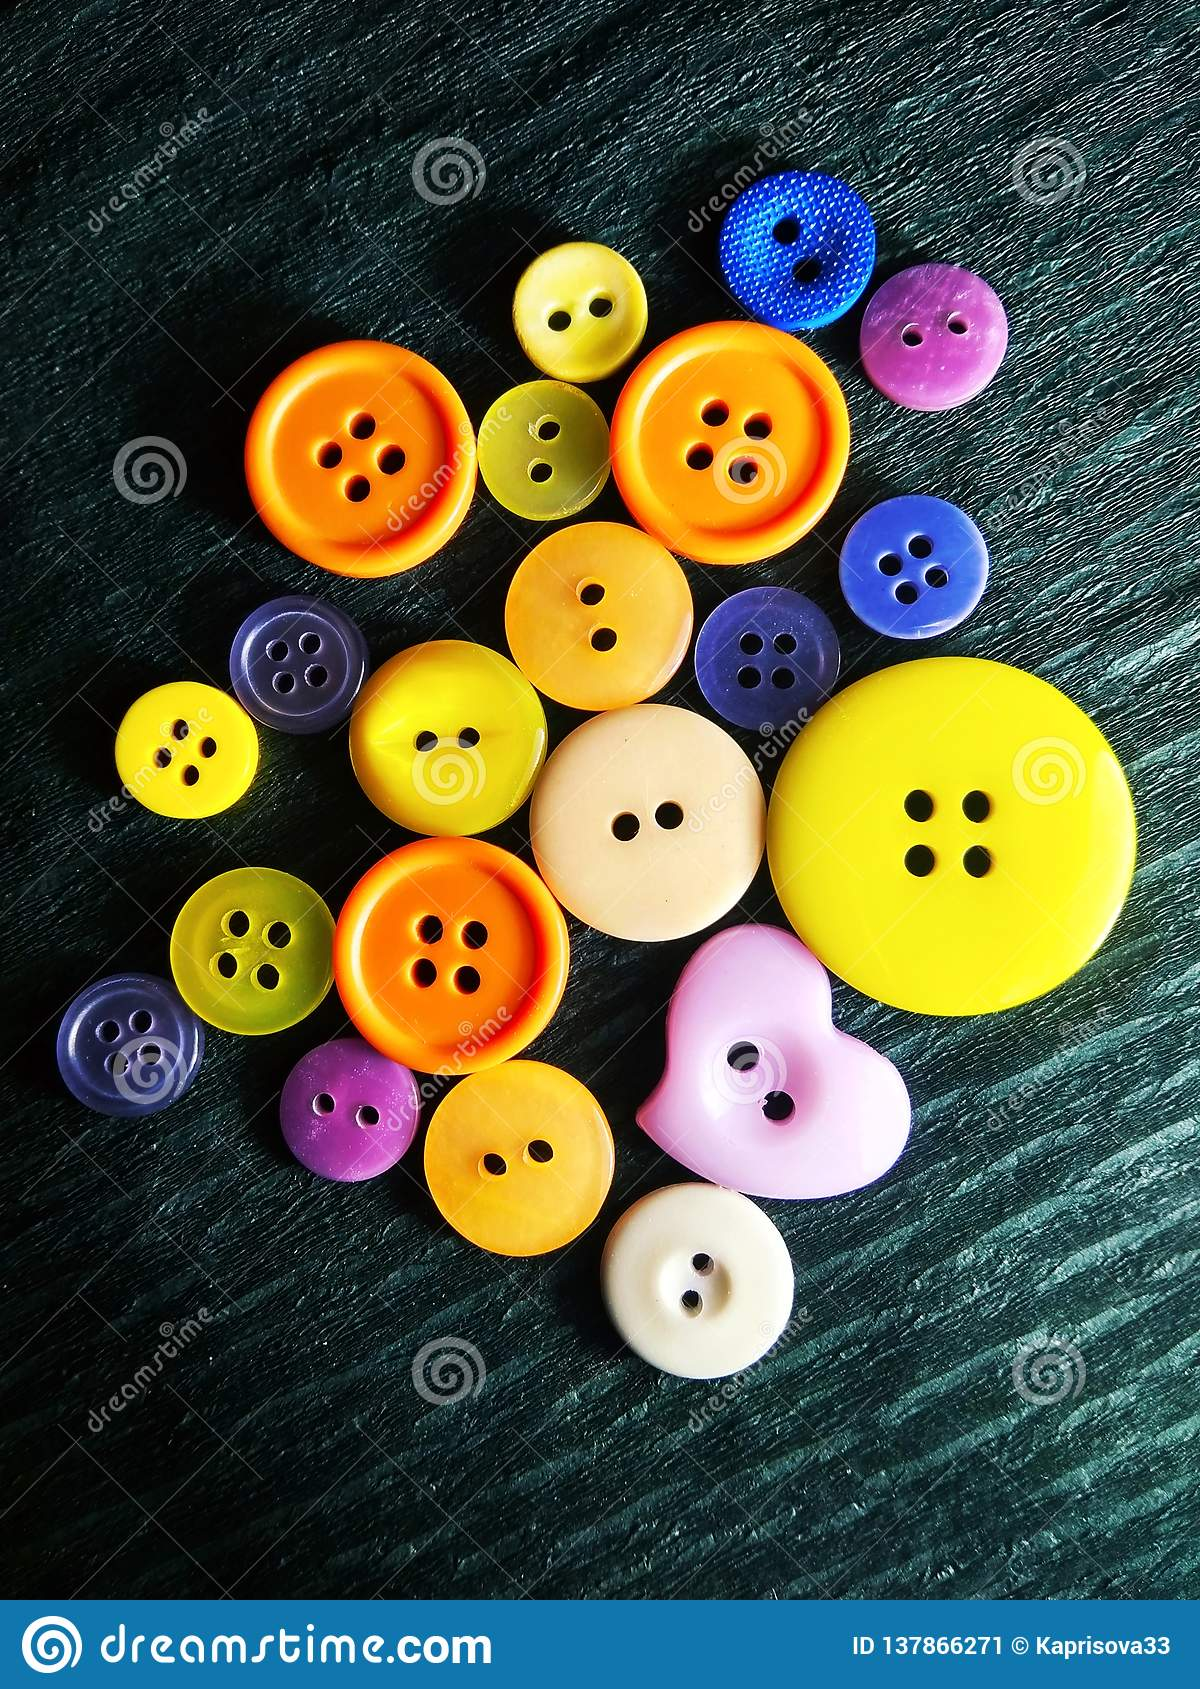 Big and small color buttons on black